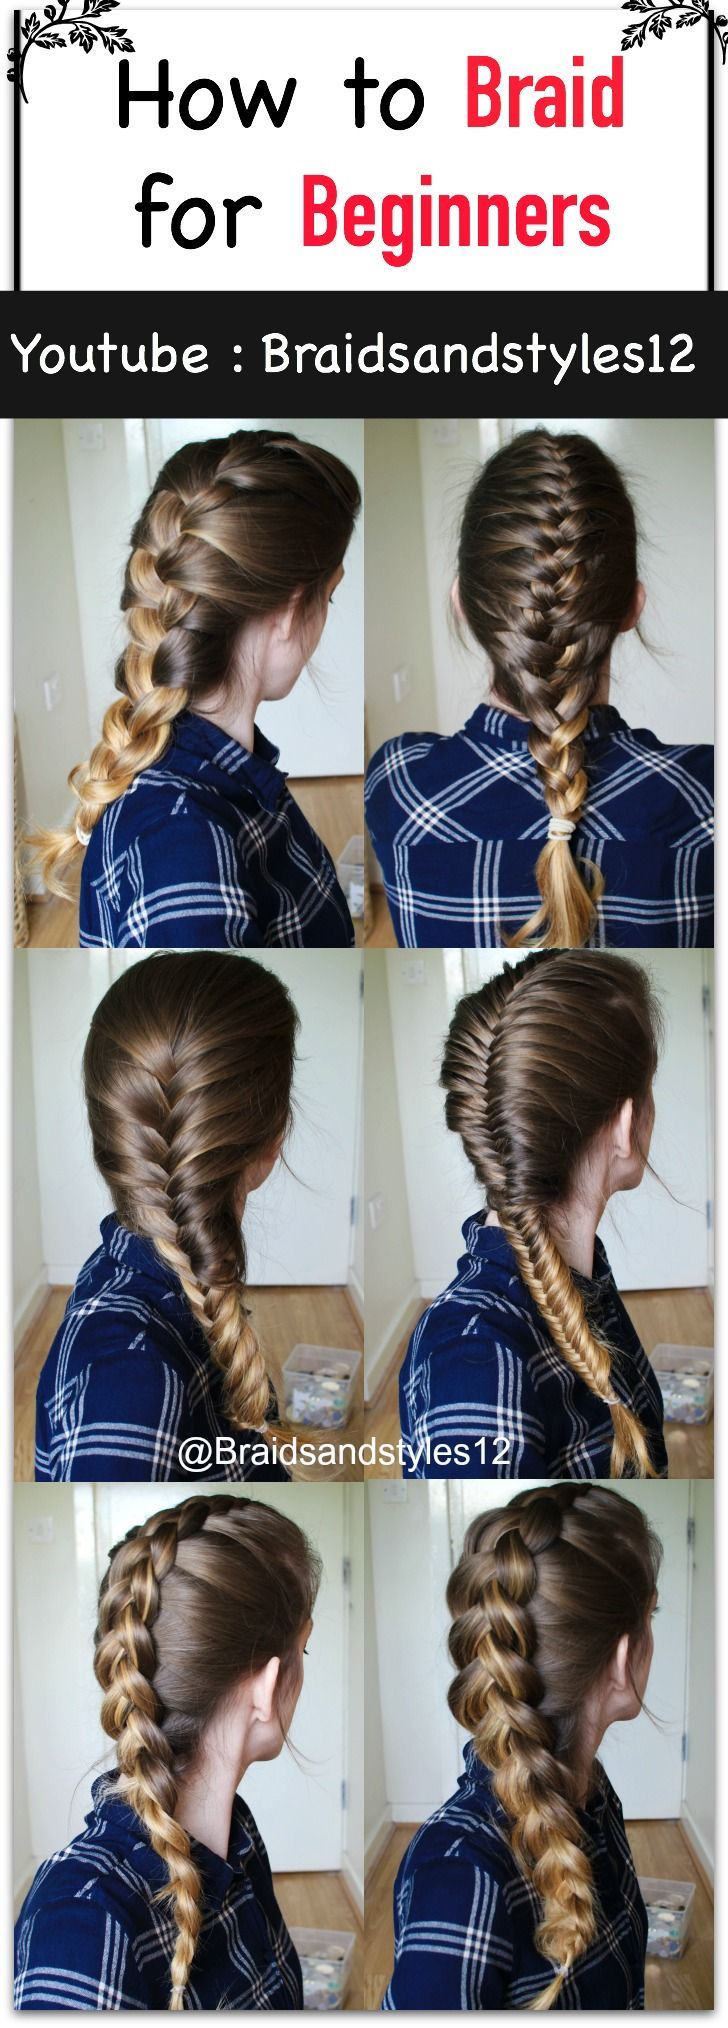 How To Braid Your Own Hair For Beginners By Braidsandstyles12 Click The  Below Or The